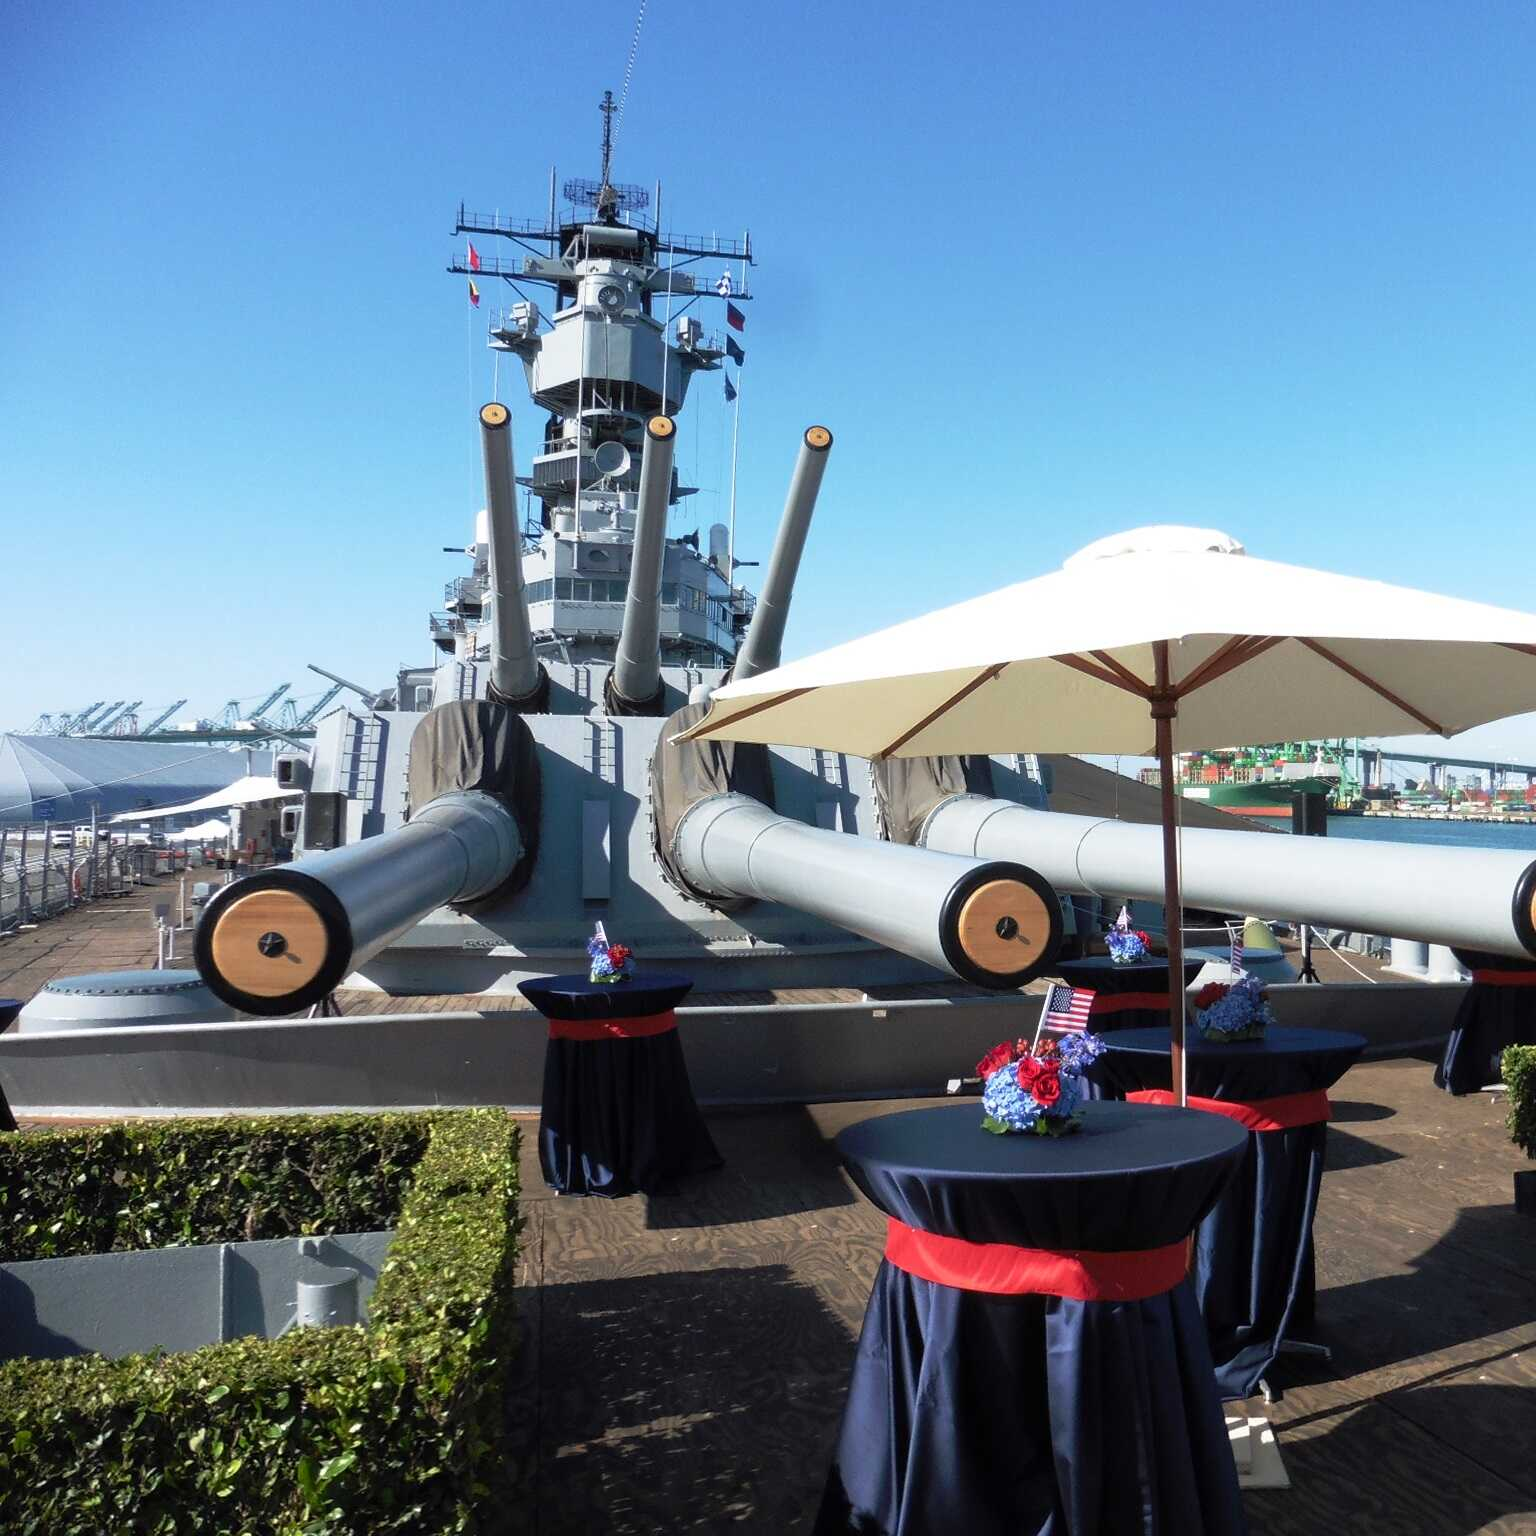 The Foc'sle event space is located onboard the Battleship IOWA Museum in San Pedro, CA. Here, event attendees can inhabit the same space as three former US presidents. This venue is operated by the Pacific Battleship Center, with proceeds from events held here going towards the preservation and restoration of this storied vessel.  The Space During the ship's 50 years of service, the Foc'sle served as the sleeping area for the crew when at sea. Now, it provides a scenic location for open-air...